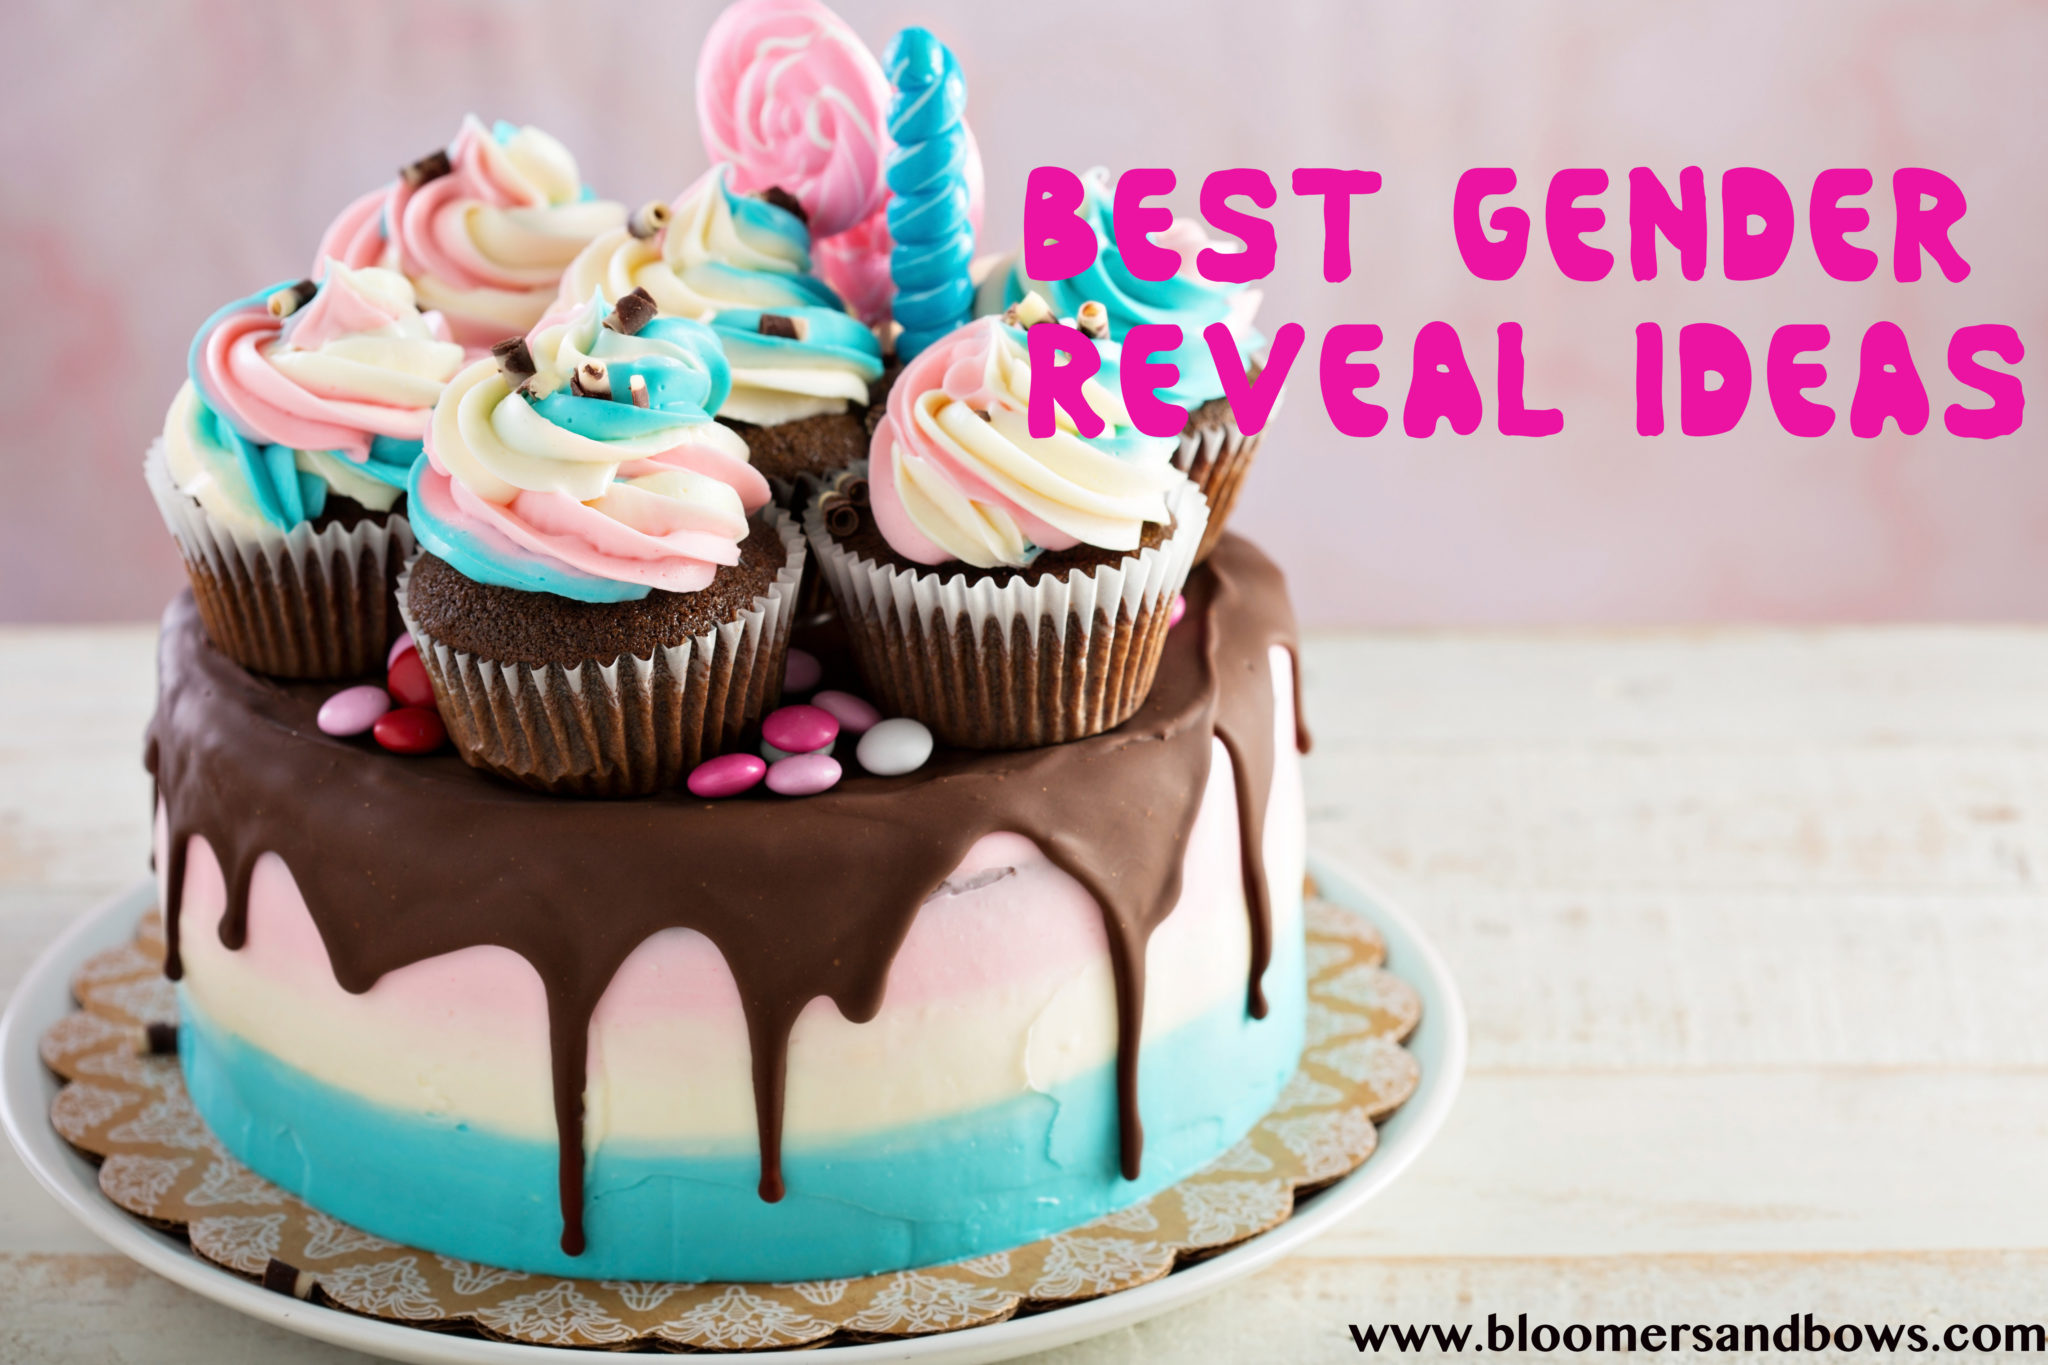 Gender Reveal Cake | Best Ideas or a Gender Reveal | Bloomers and Bows